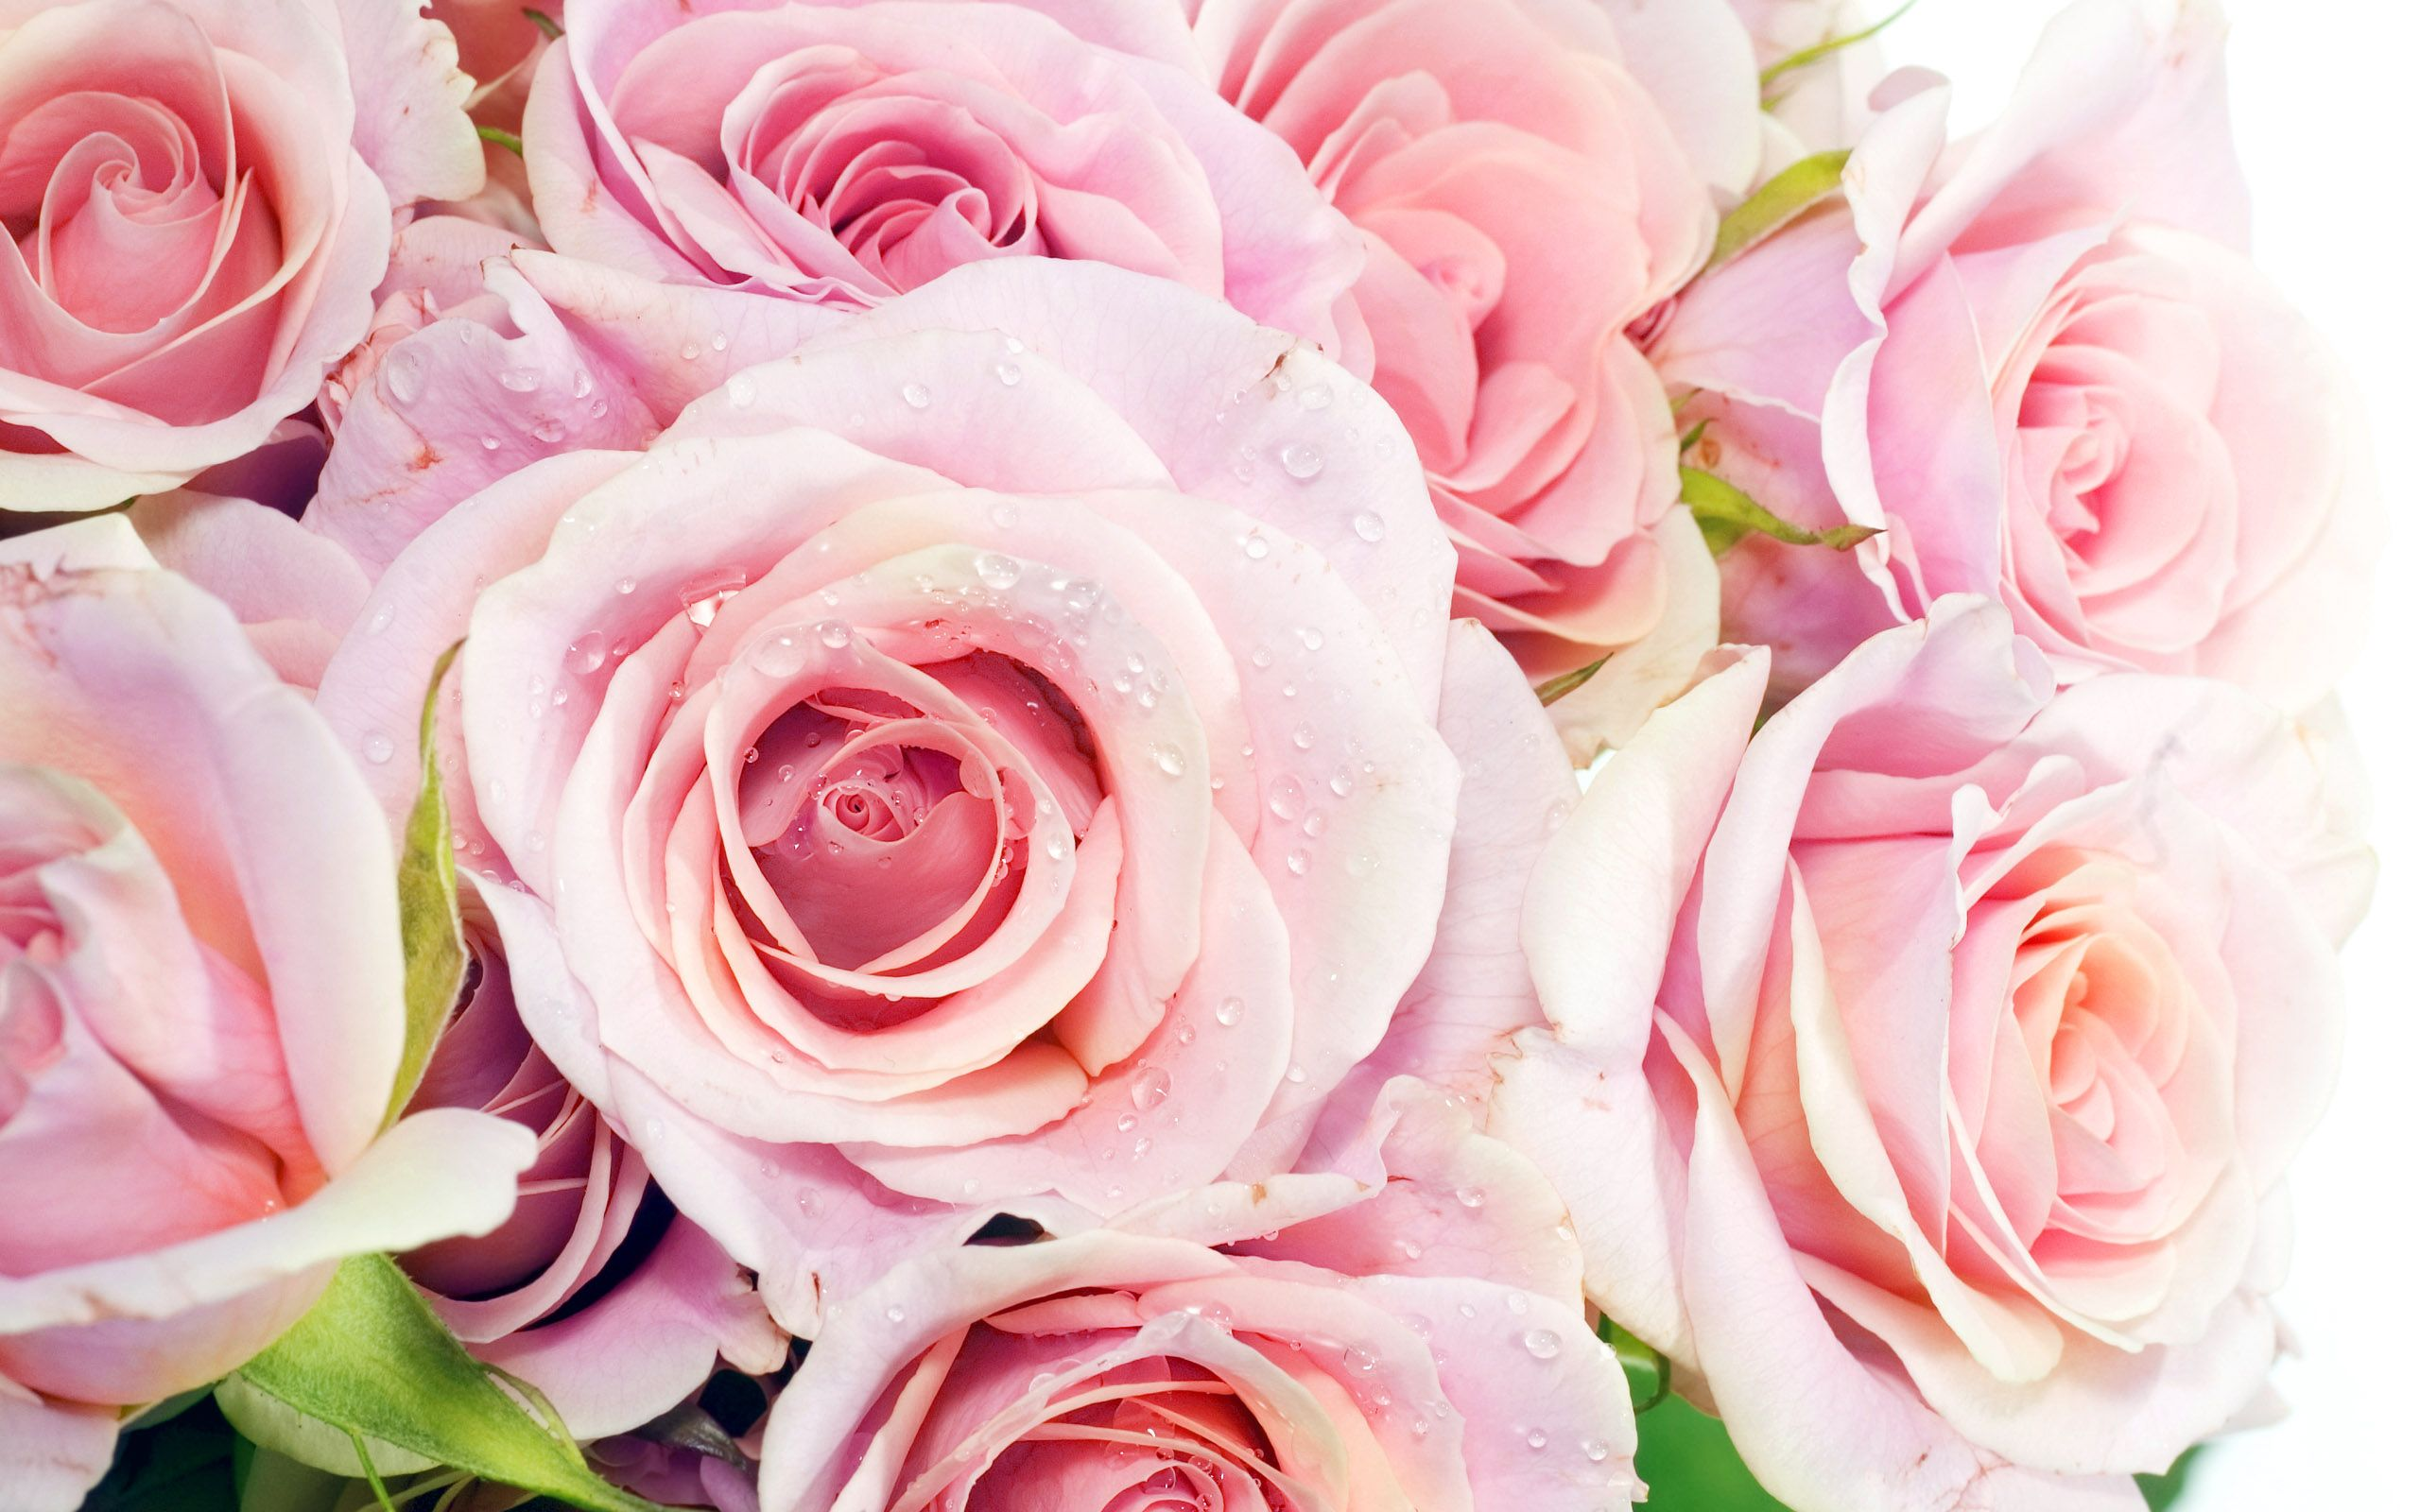 Pink roses wallpaper picture rose wallpaper wallpapers Colors that go with rose pink